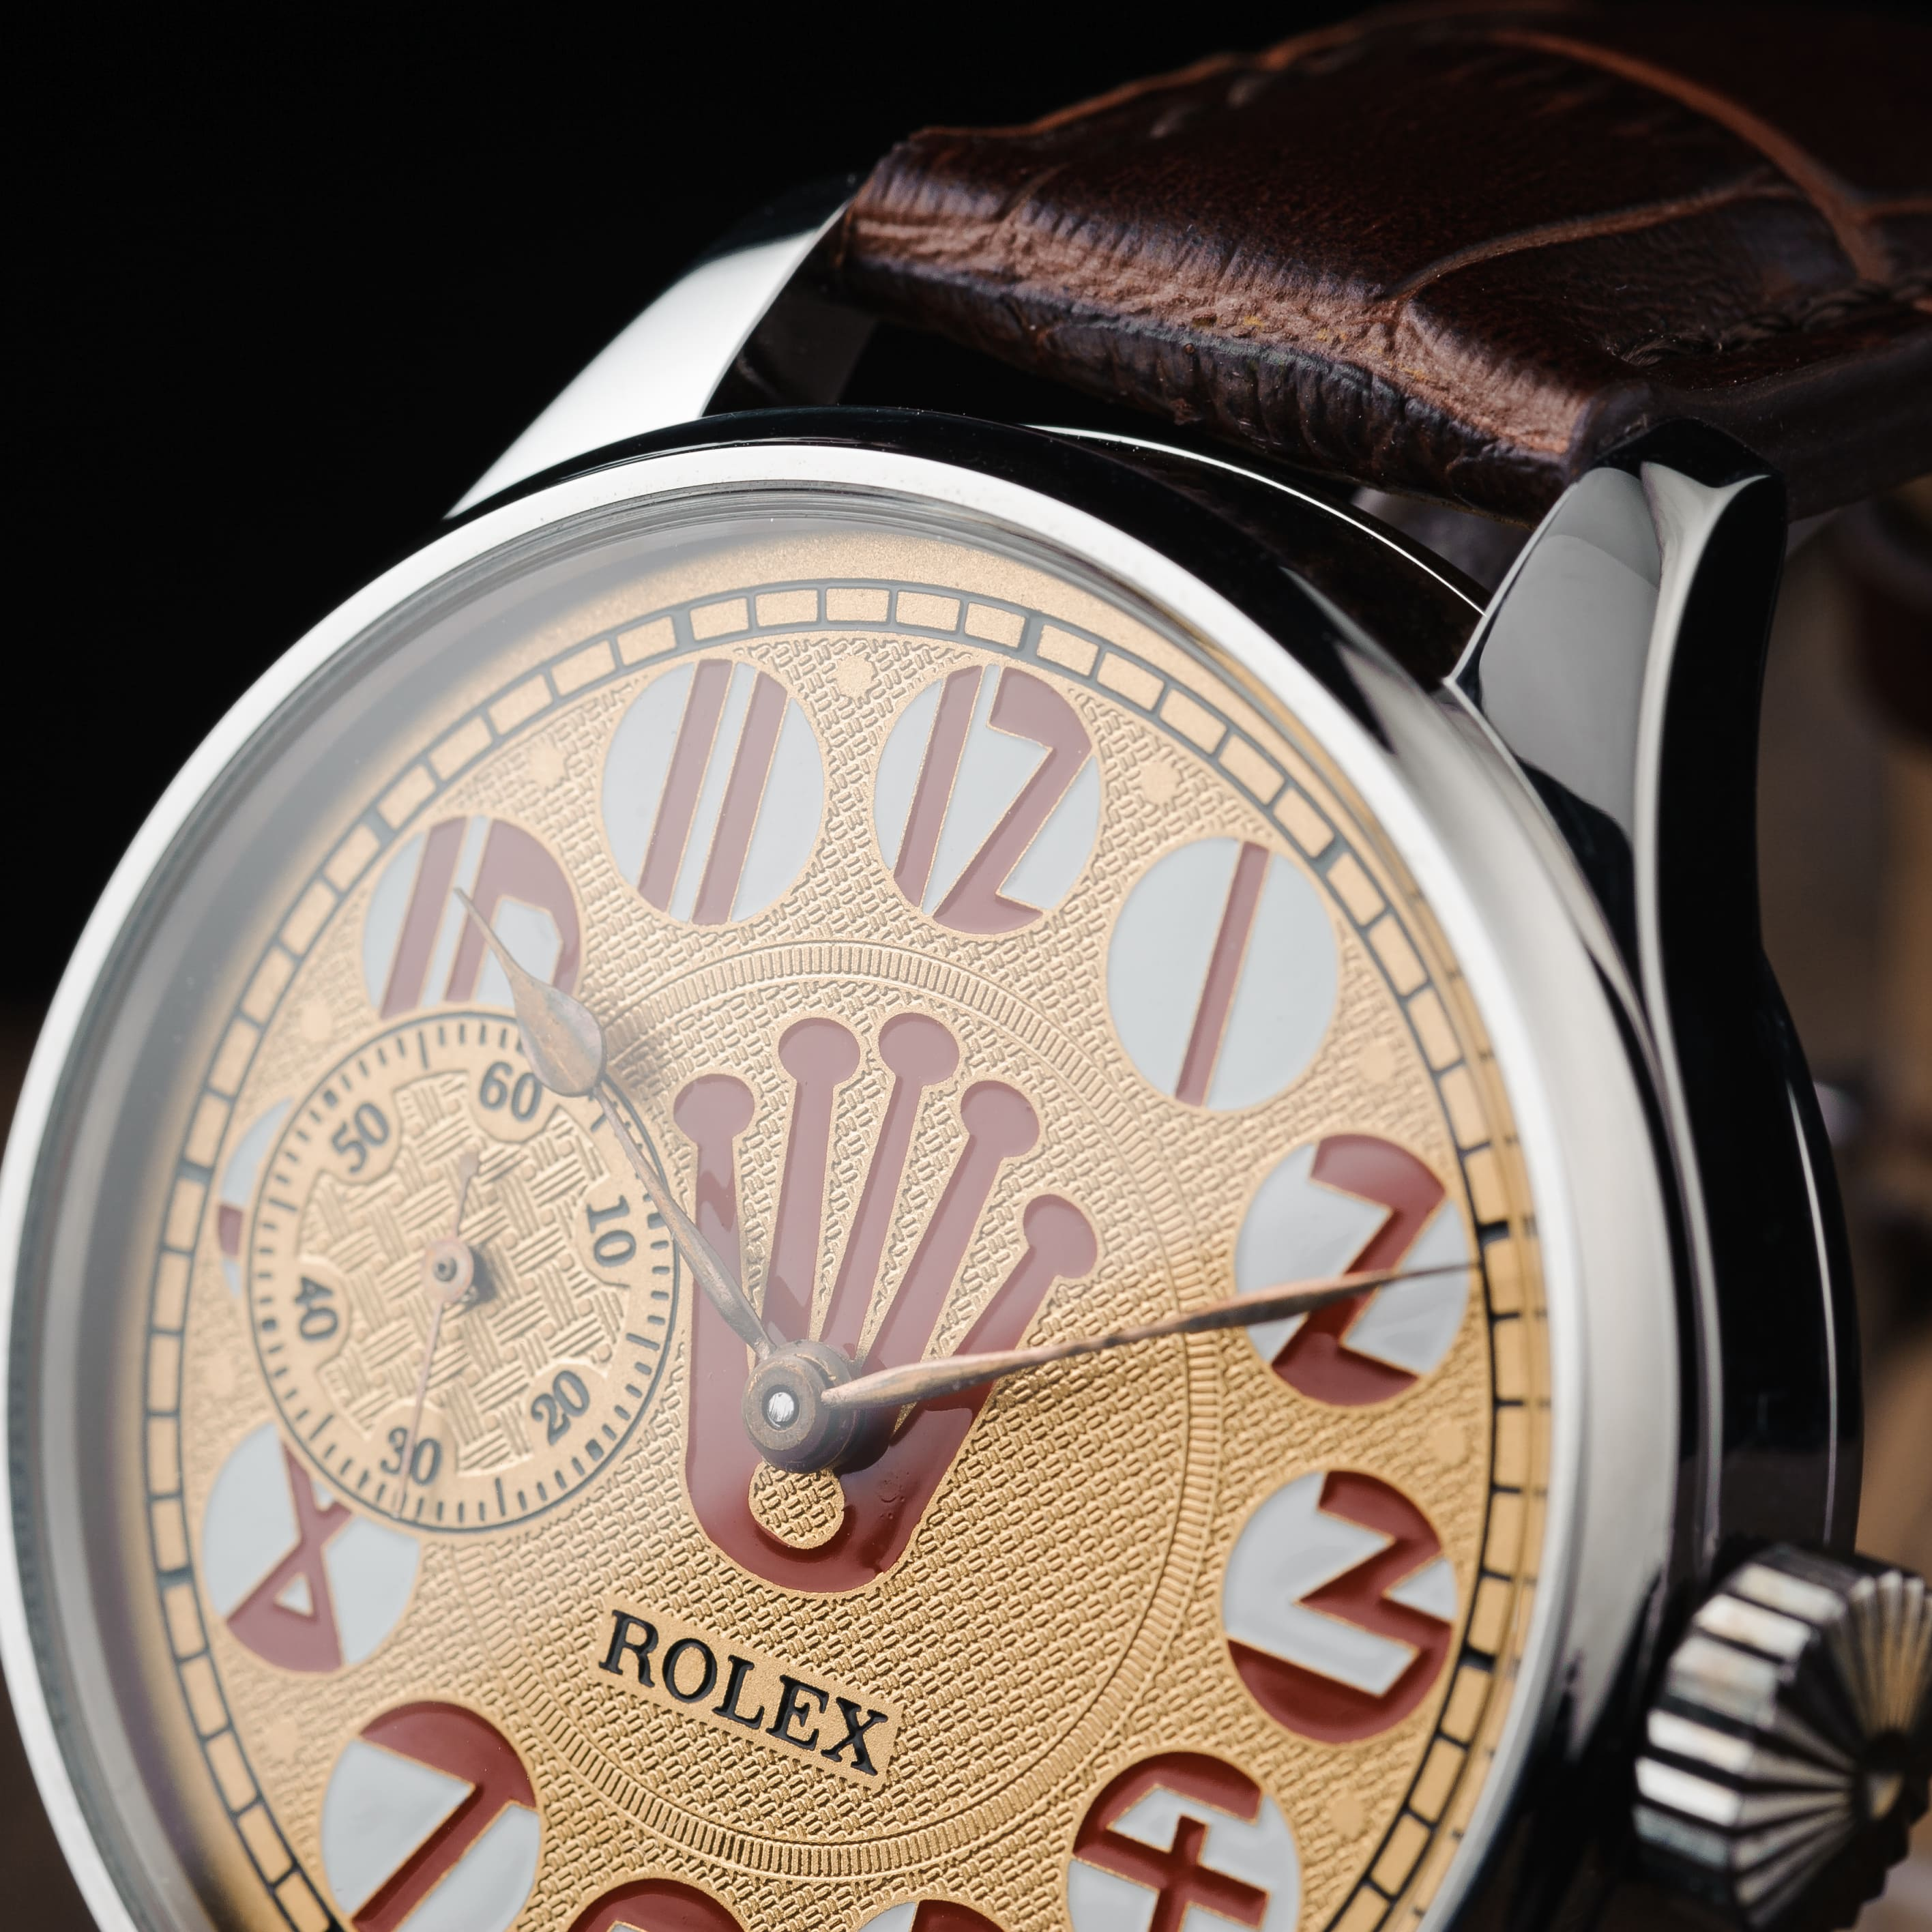 Rolex orange clock Movement: original, mechanical strap is 22 mm Case diameter without crown 48 mm.